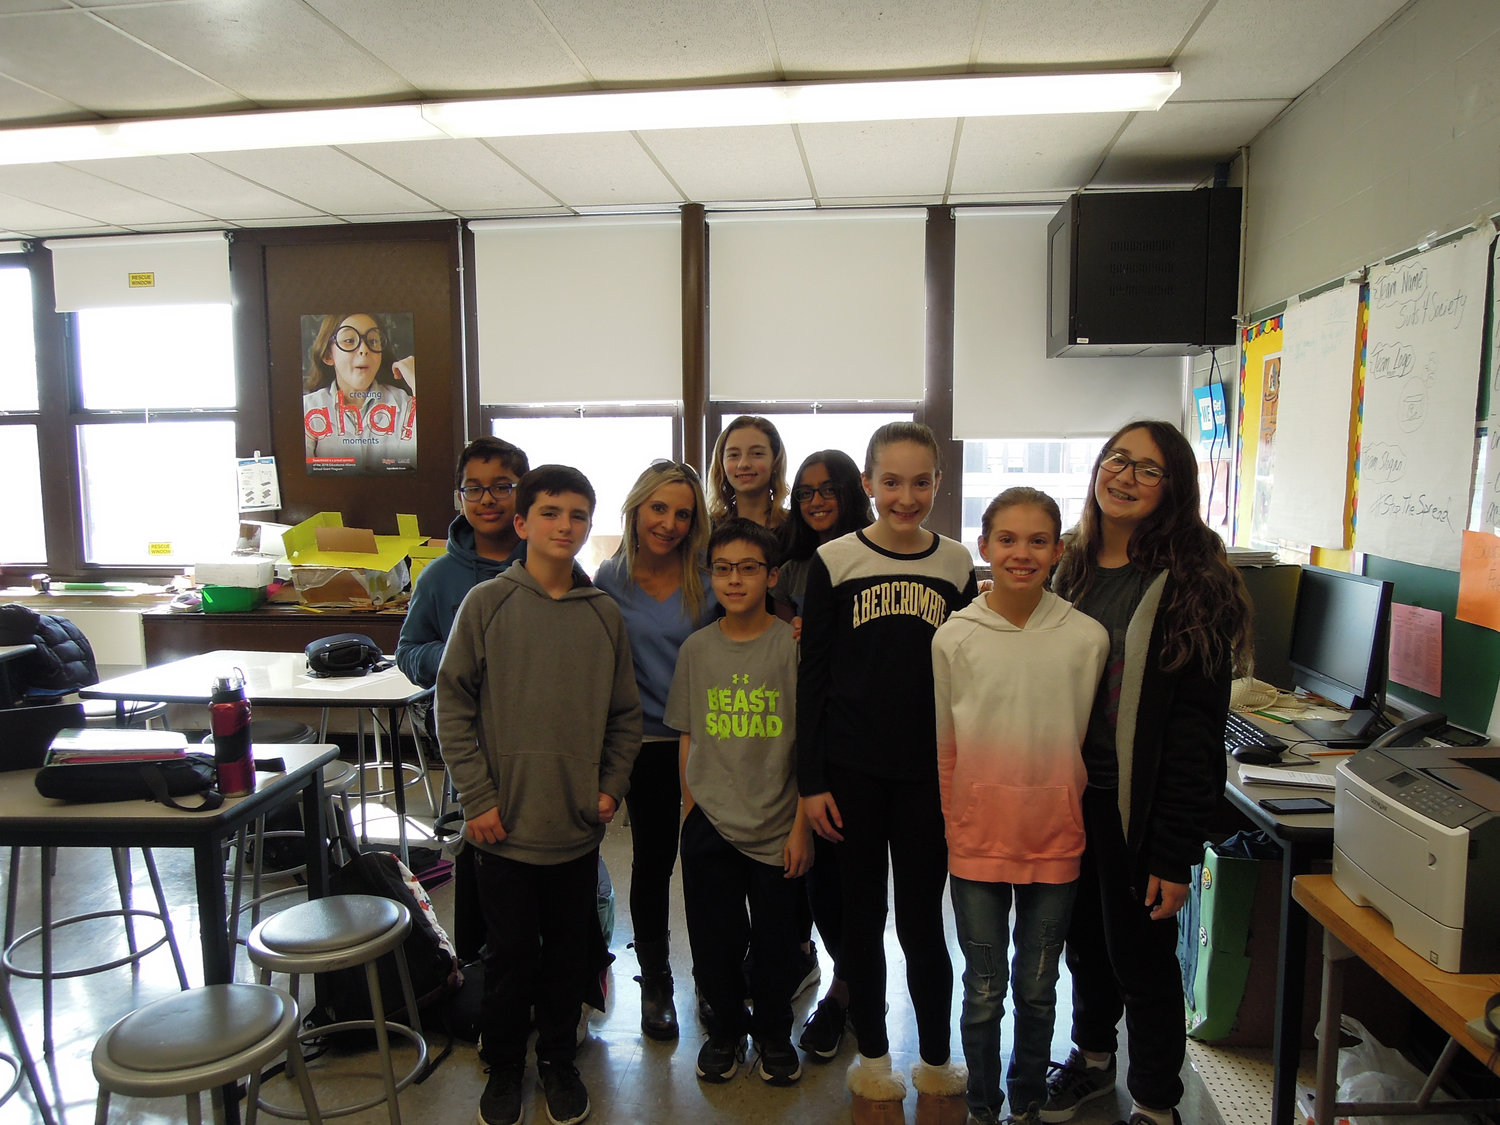 Wantagh Middle School's EsSCENTial Melts team won $10,000 in the annual Lead2Feed Student Challenge last month for a project addressing the mental health needs of their schoolmates and community. Teacher Patti Andreolas was third from left.